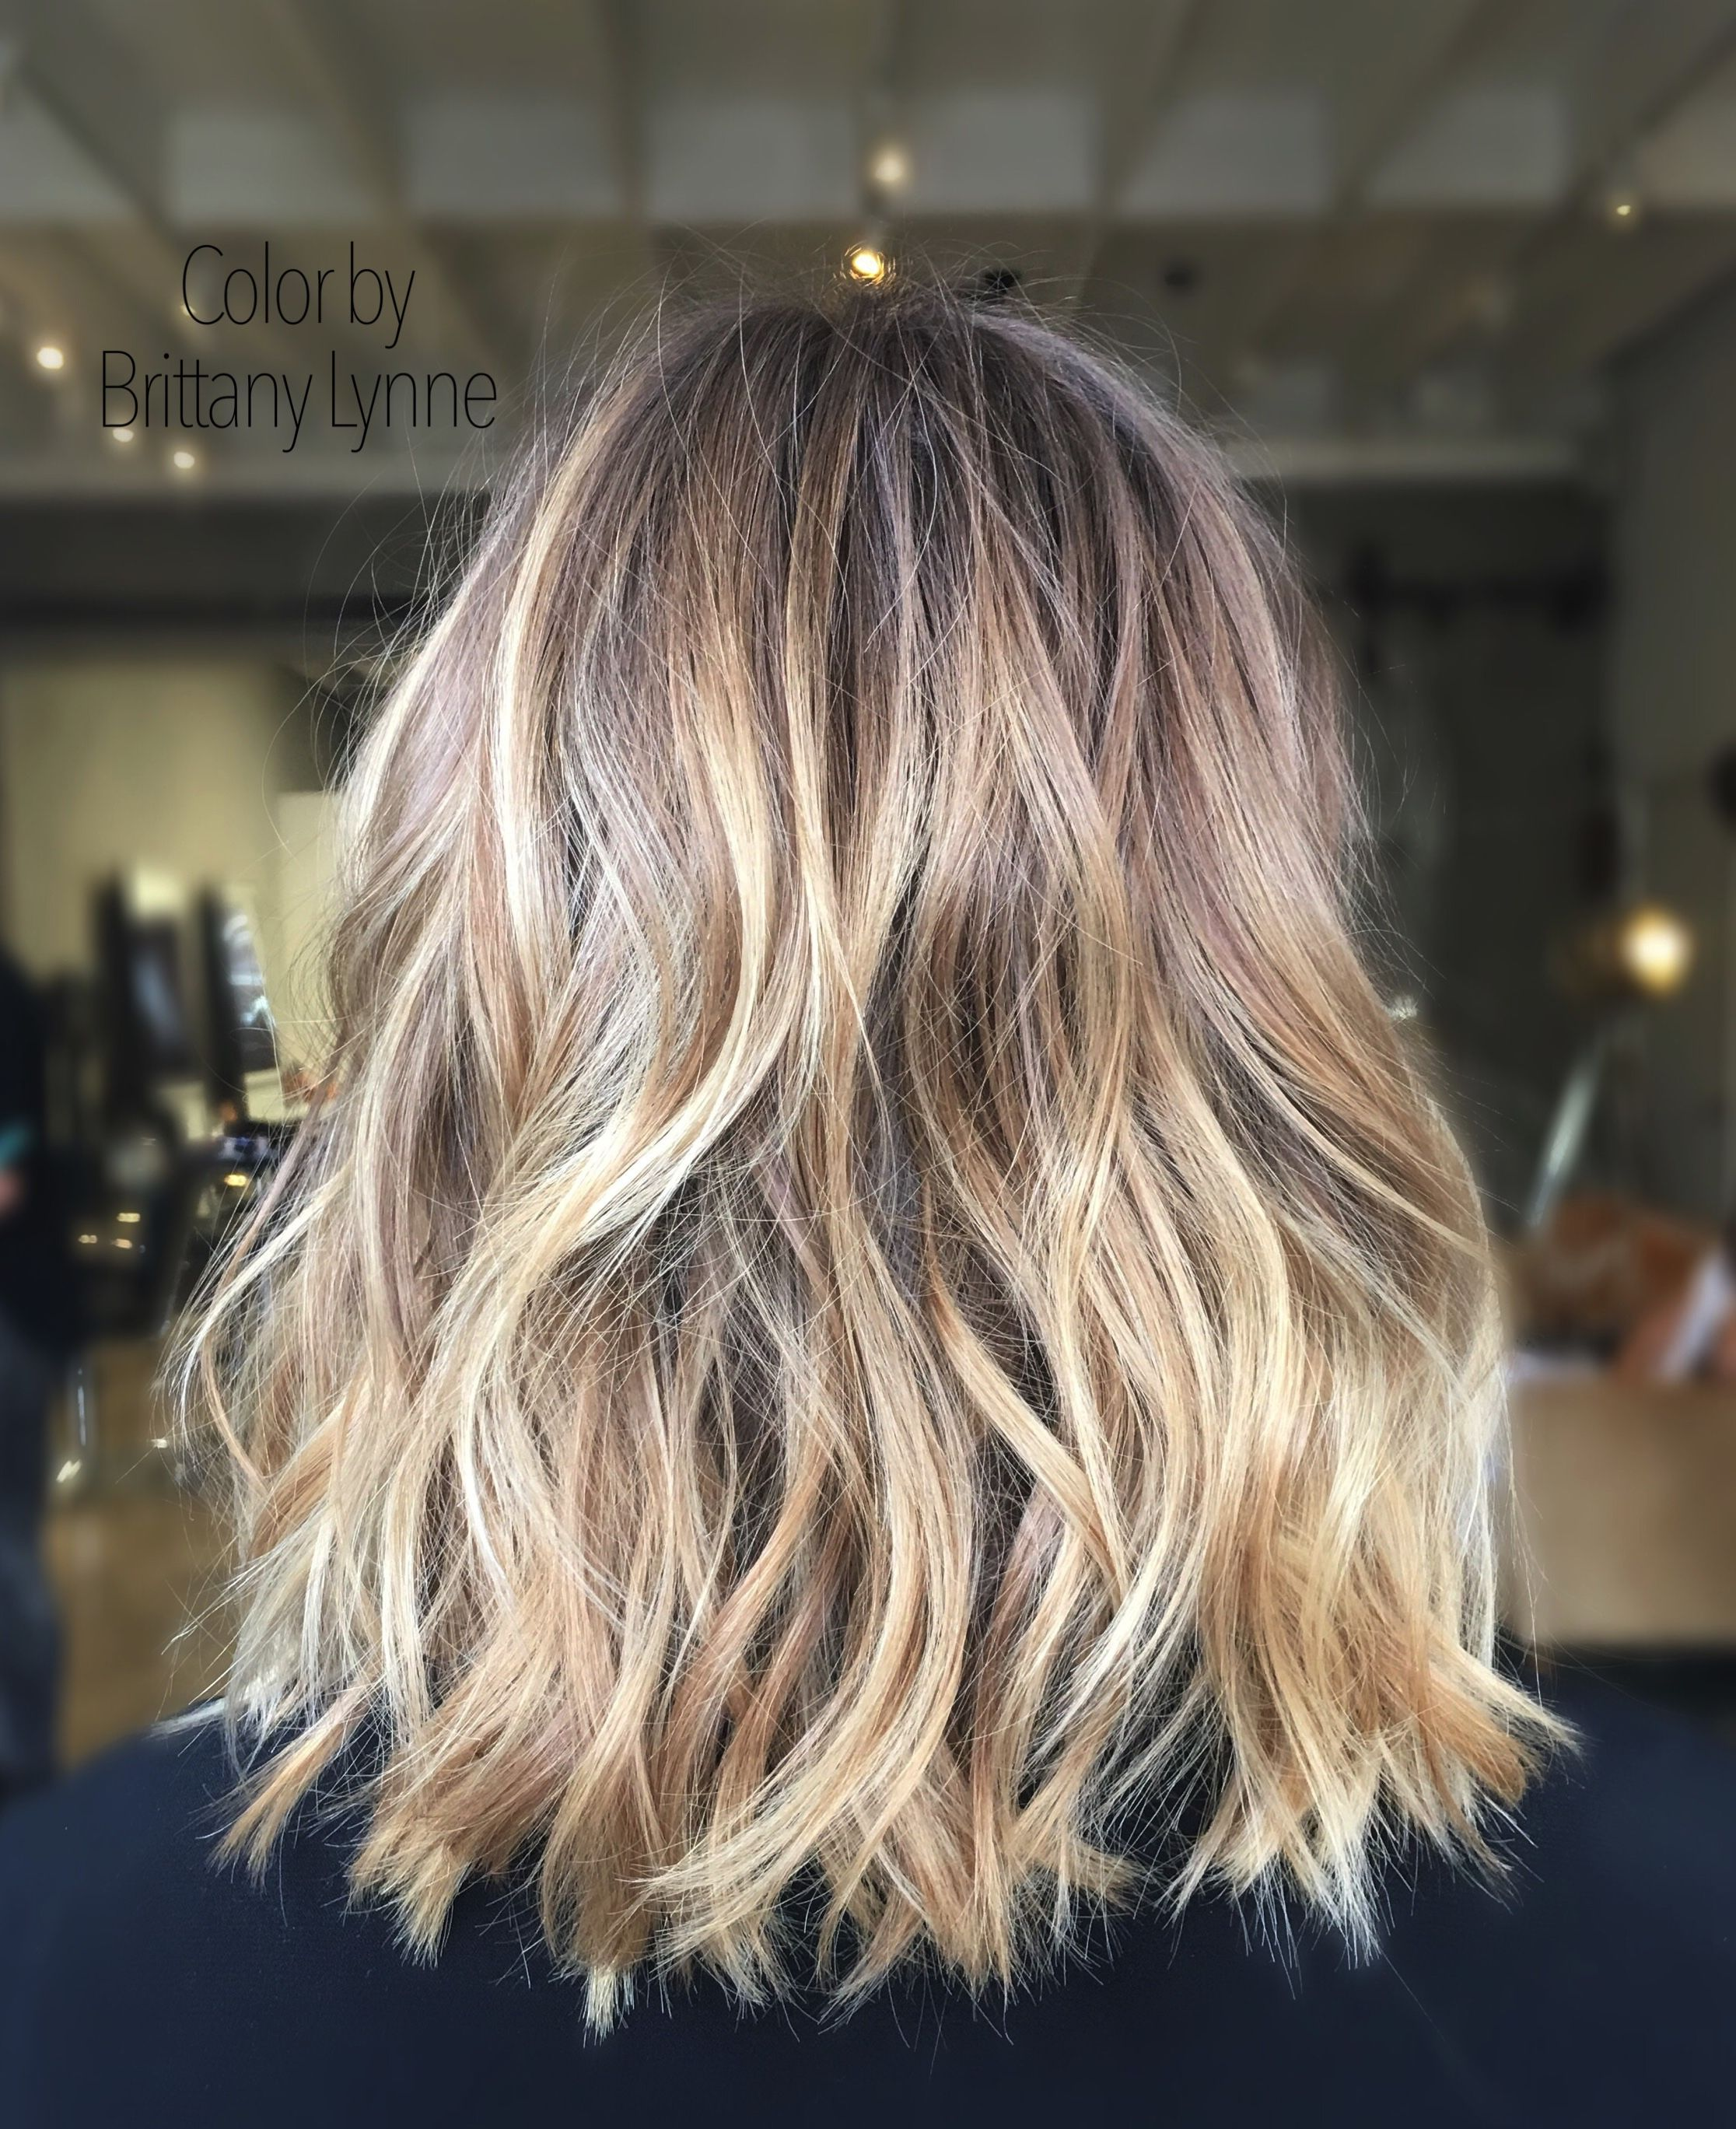 Blonde Balayage Hair Colors With Highlights: Hair Color By Brittany Lynne